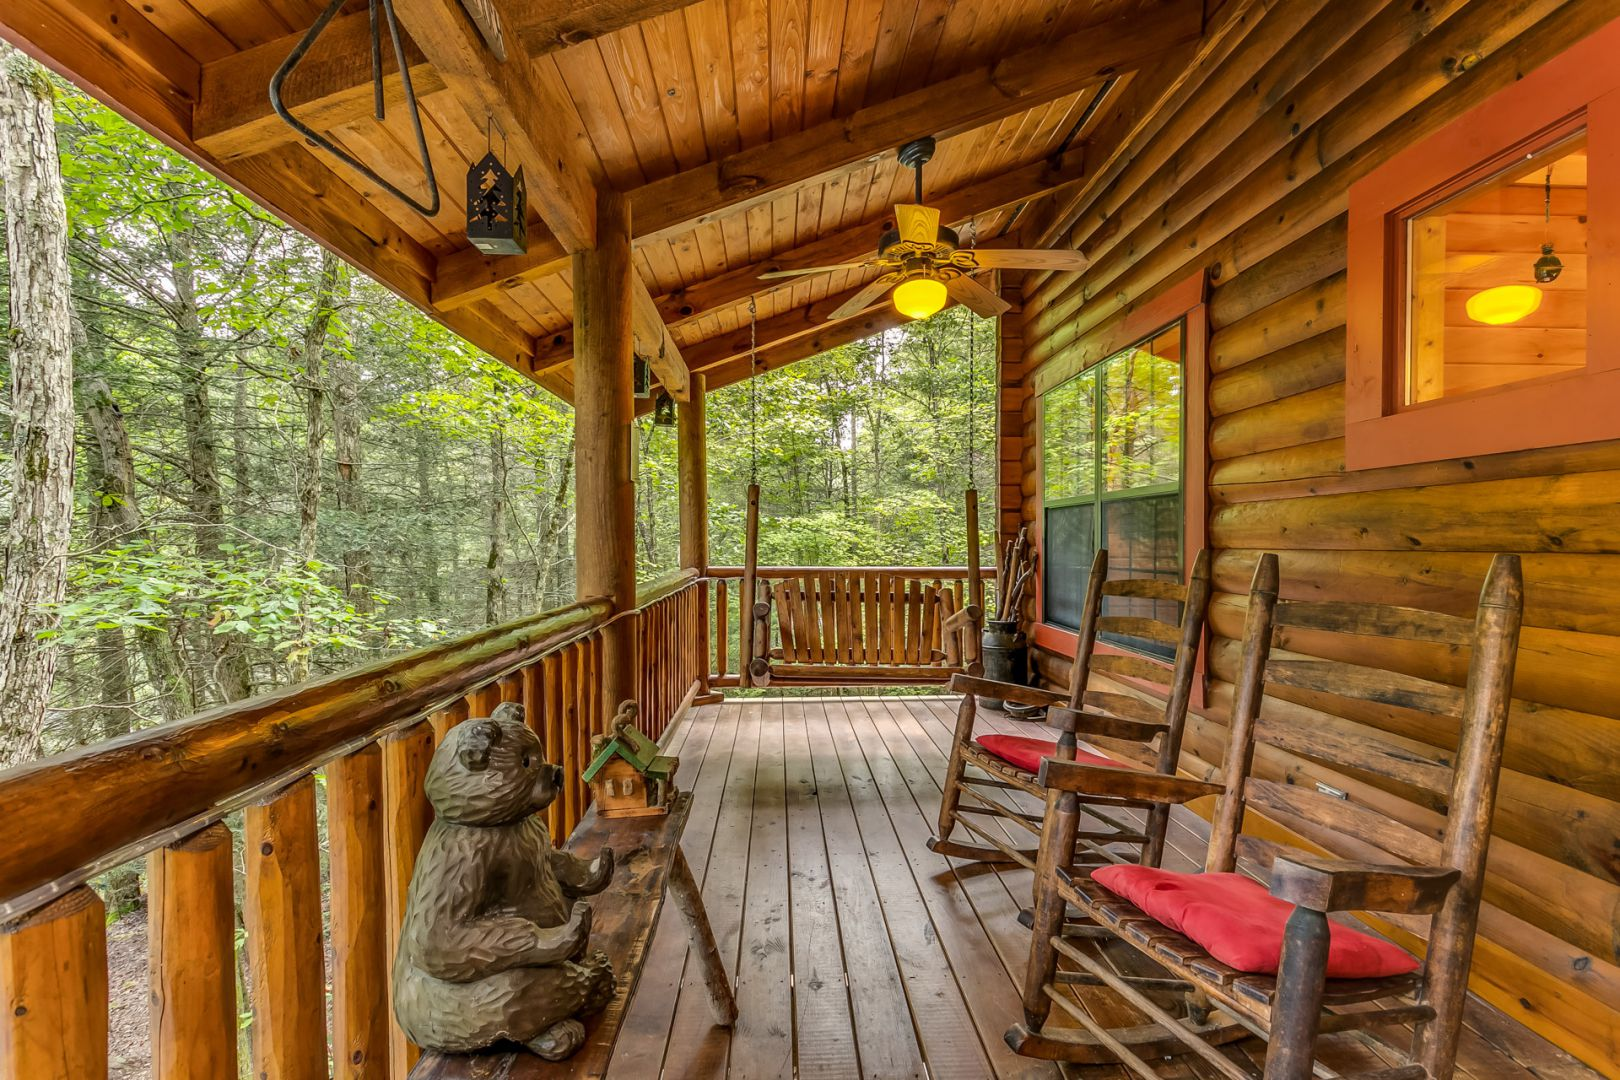 A Tranquil Place Rental Cabin Cuddle Up Cabin Rentals